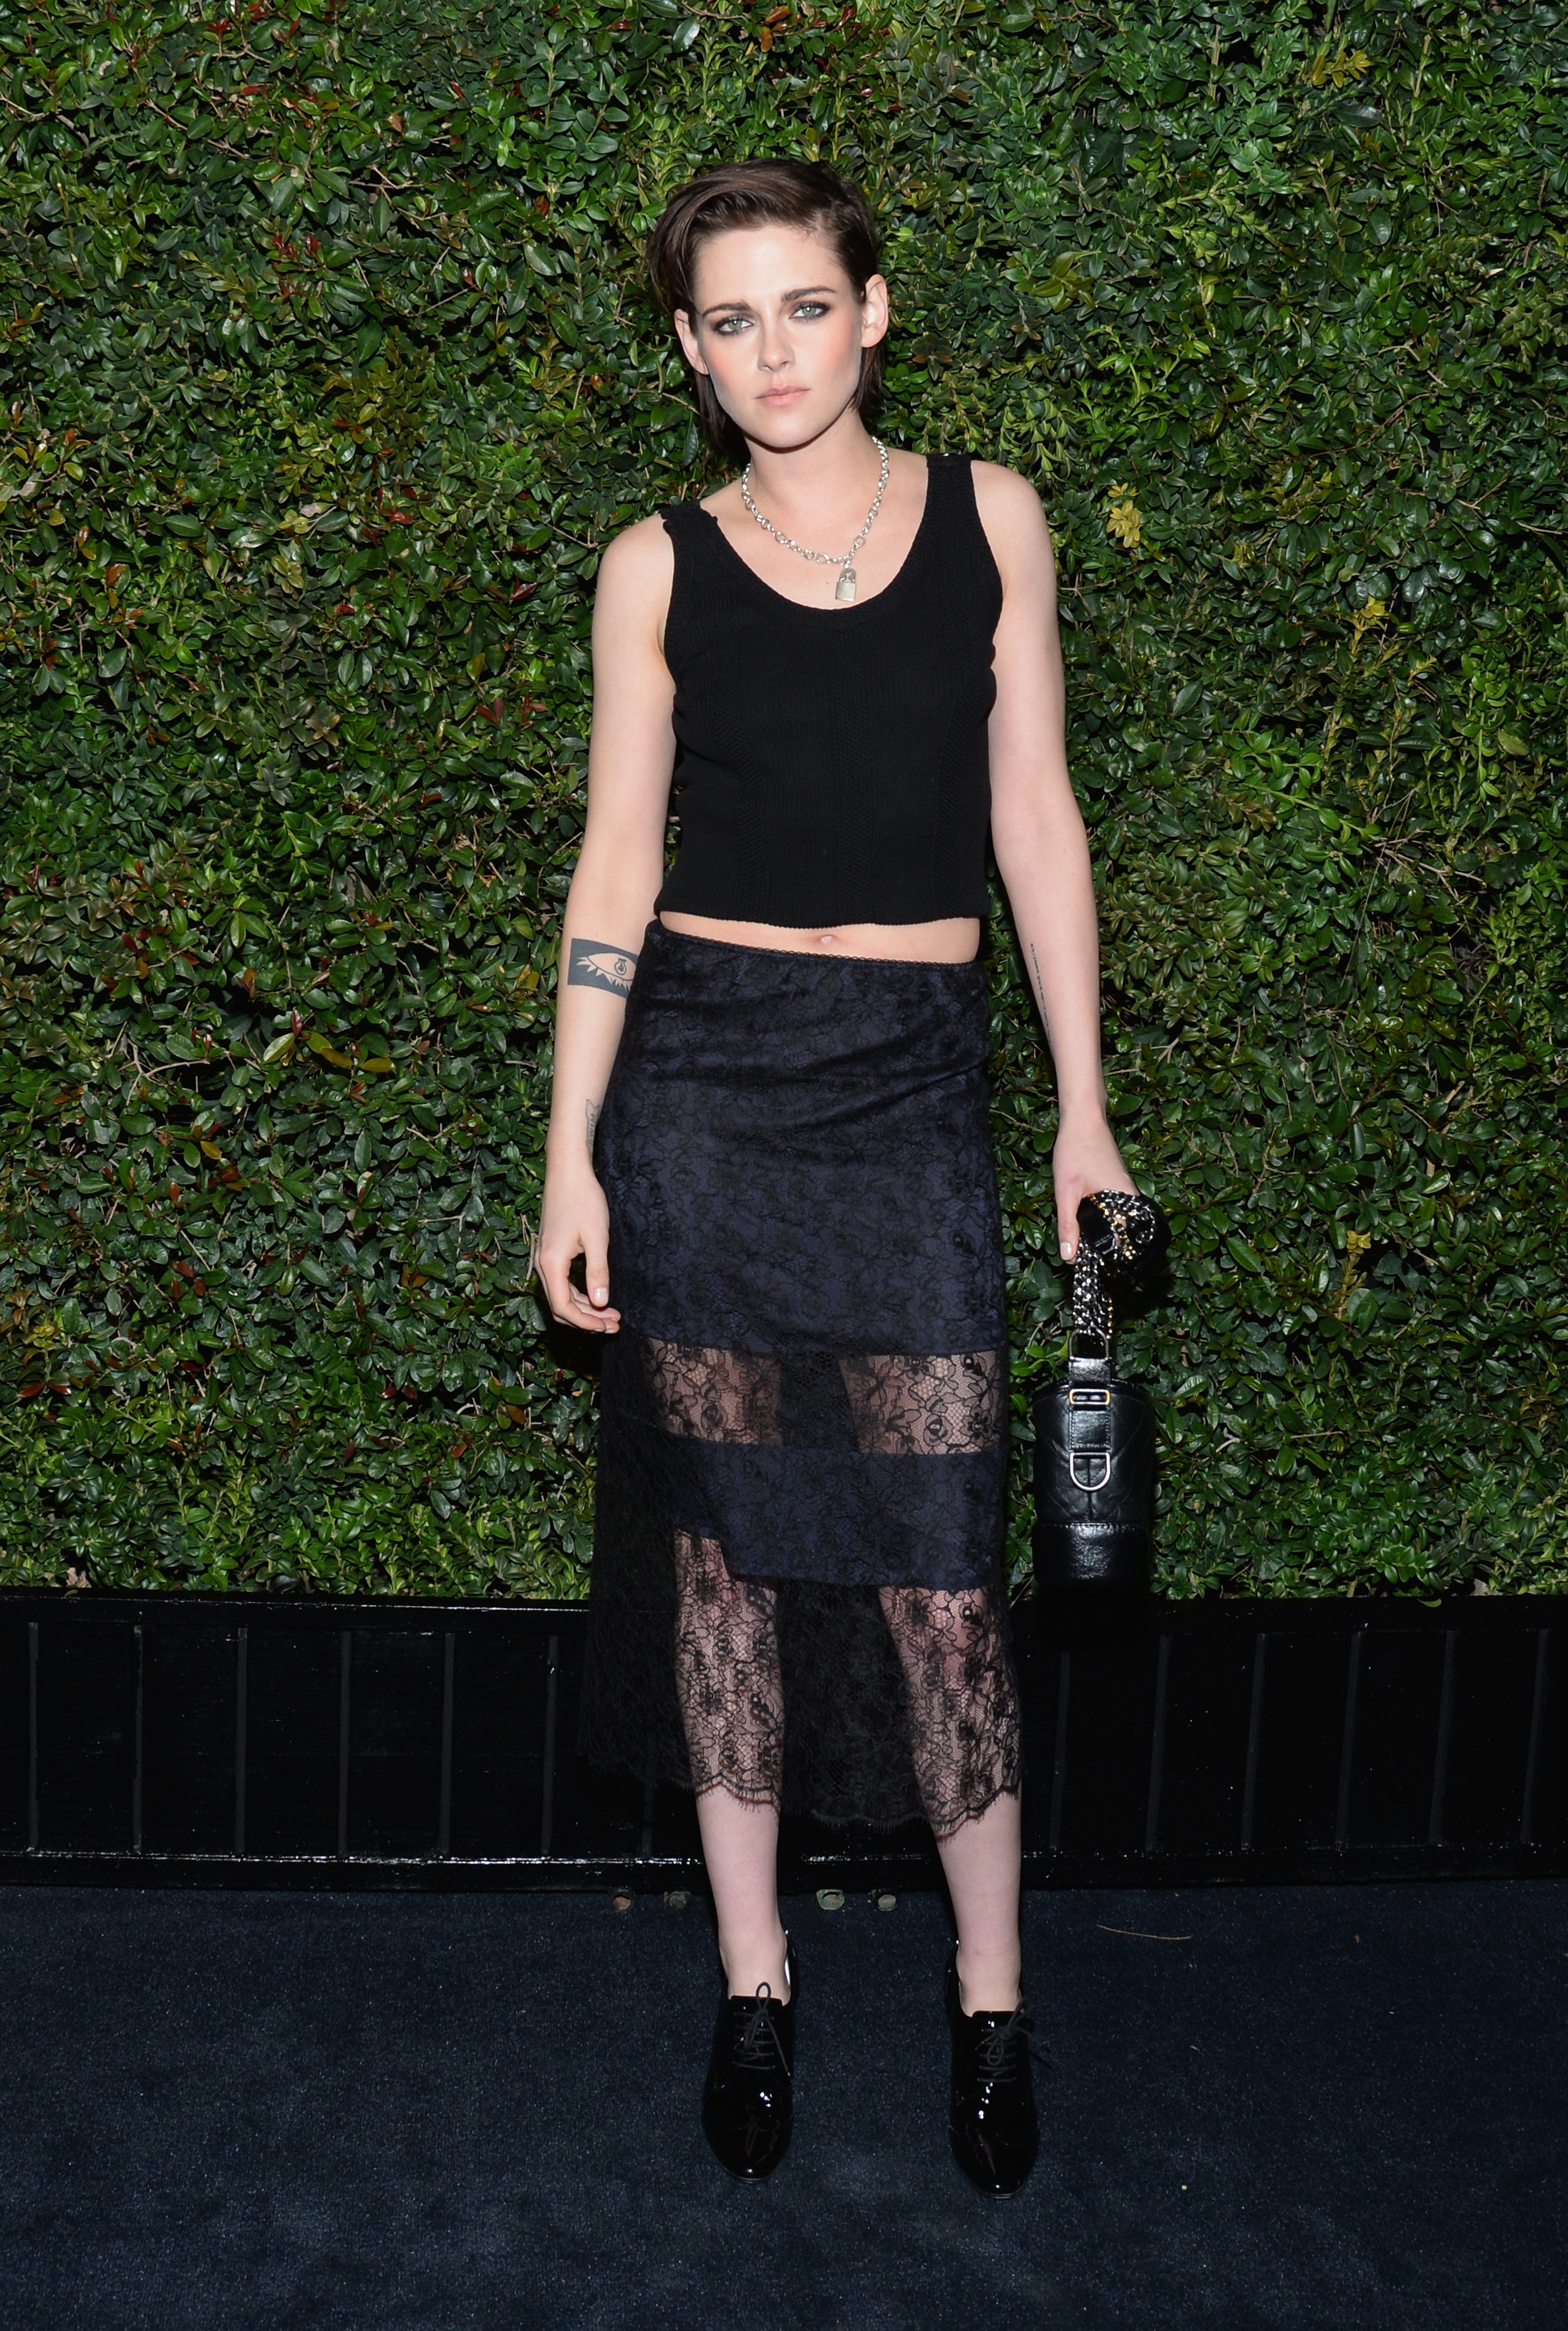 Kristen stewart charles finch and chanel annual pre oscar awards dinner in beverly hills new picture